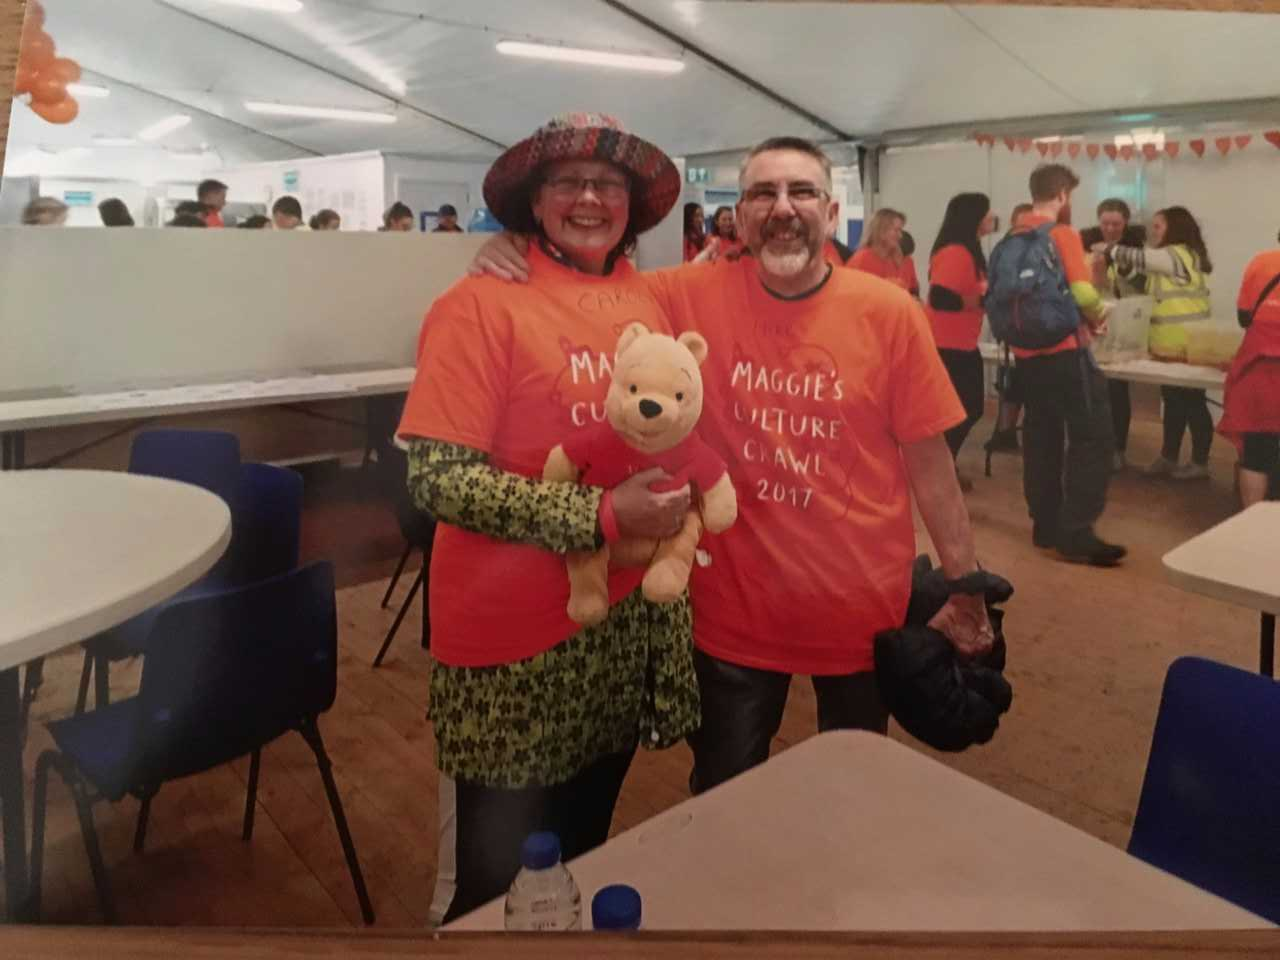 Carol Hudson, along with her cousin Michael Wonnacott and her mum's Winnie the Pooh Bear, completed the Culture Crawl for charity